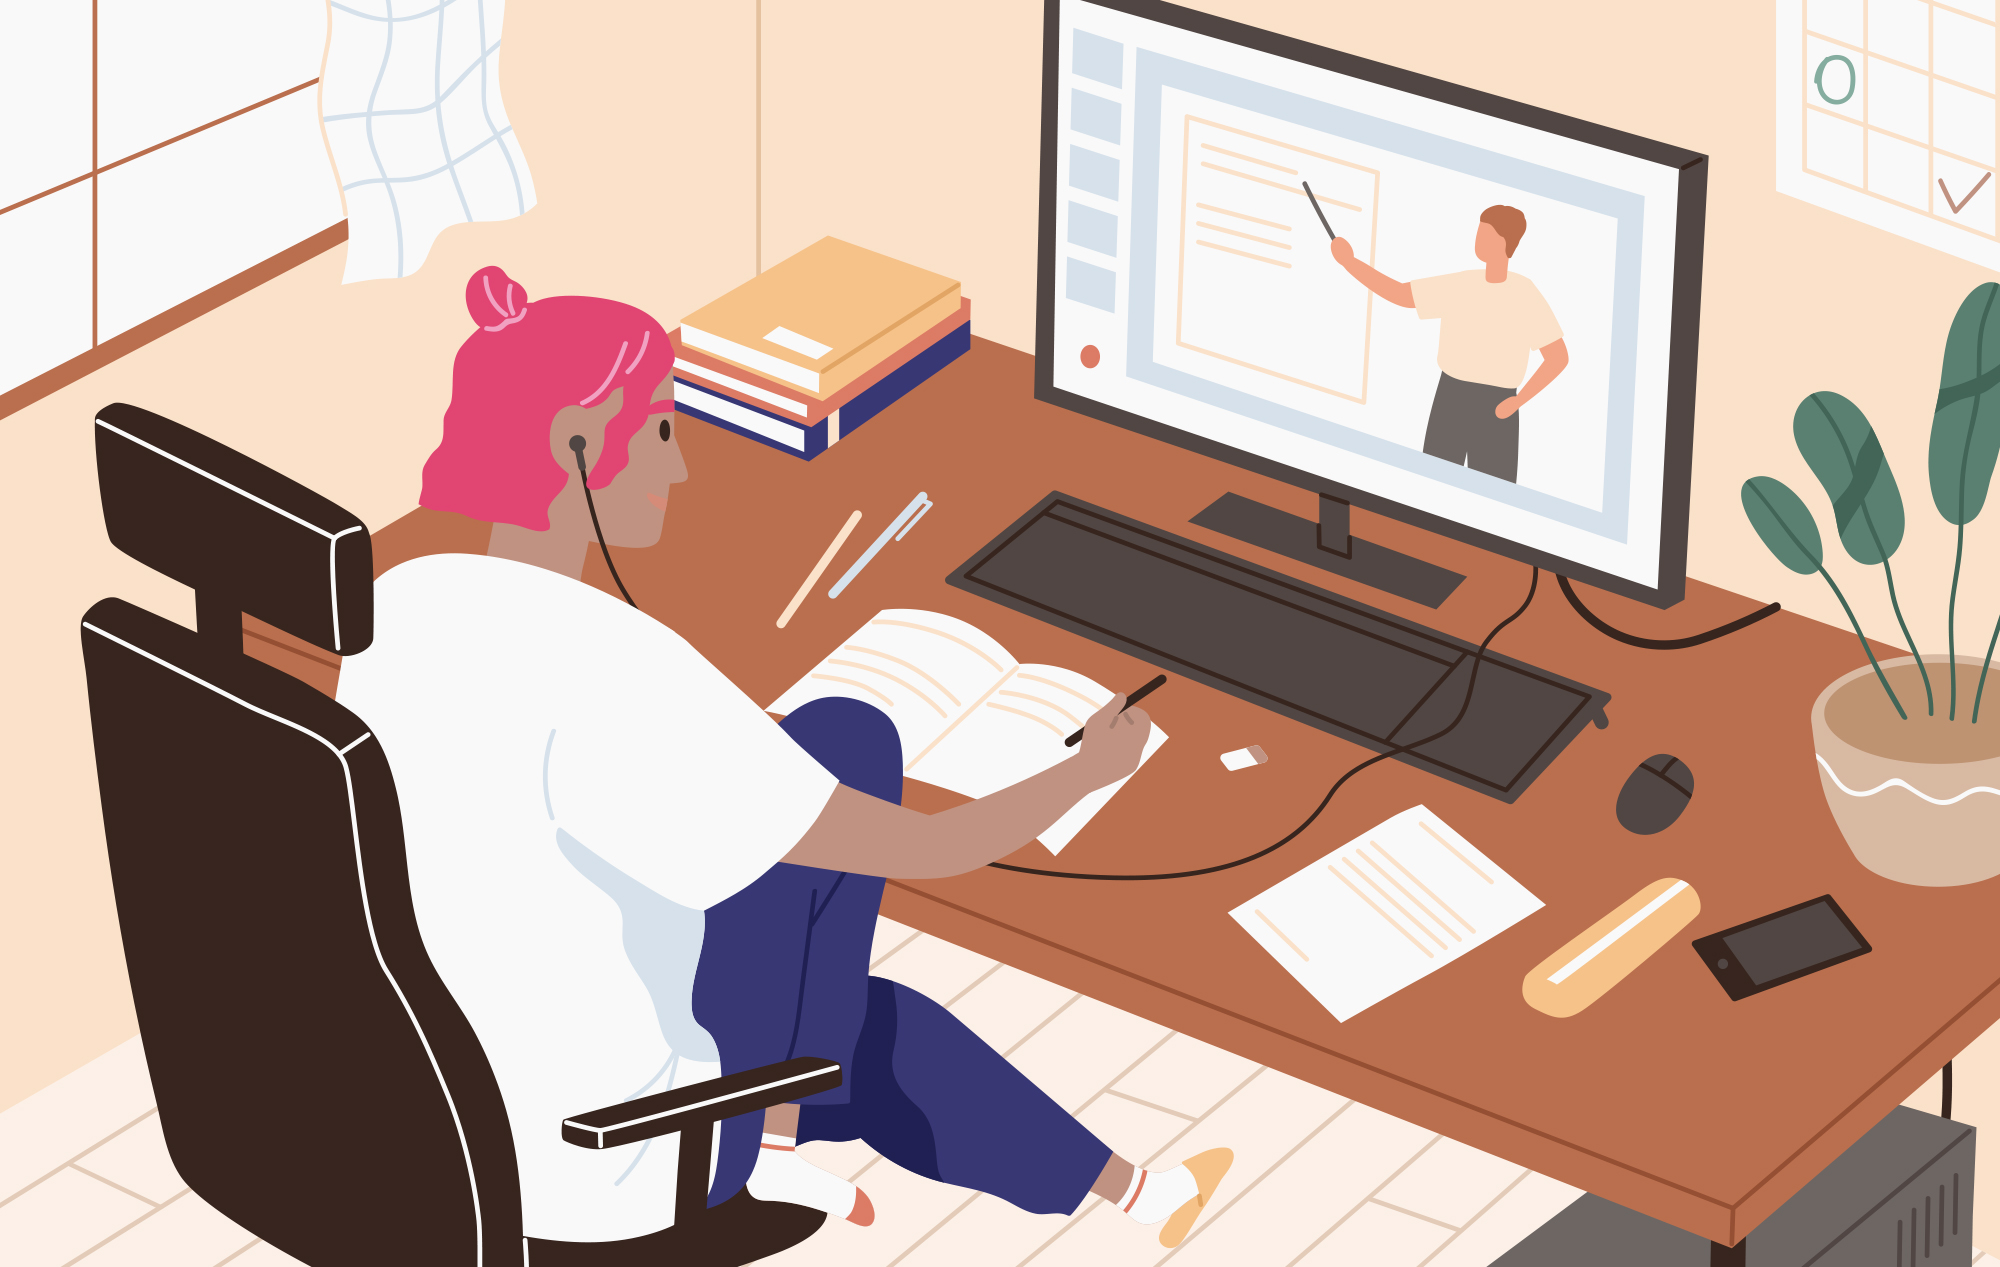 Illustration of a woman with pink hair sitting in her desk chair, watching a lecture online. She's taking notes in her notebook, and office supplies like pens, pencils and erasers are strewn across the desktop.